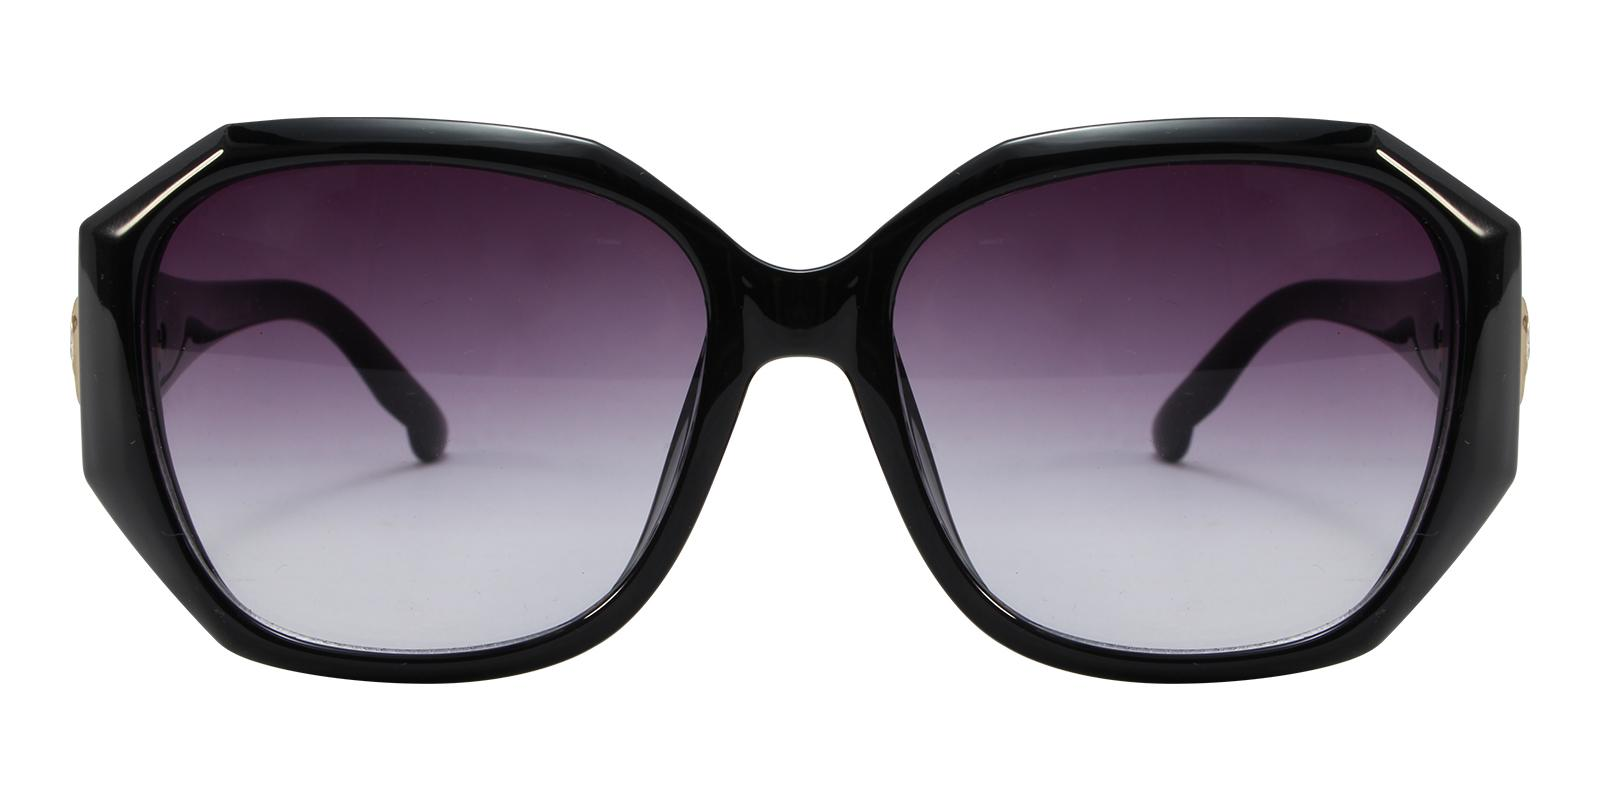 Saturn Black Acetate Sunglasses , UniversalBridgeFit Frames from ABBE Glasses